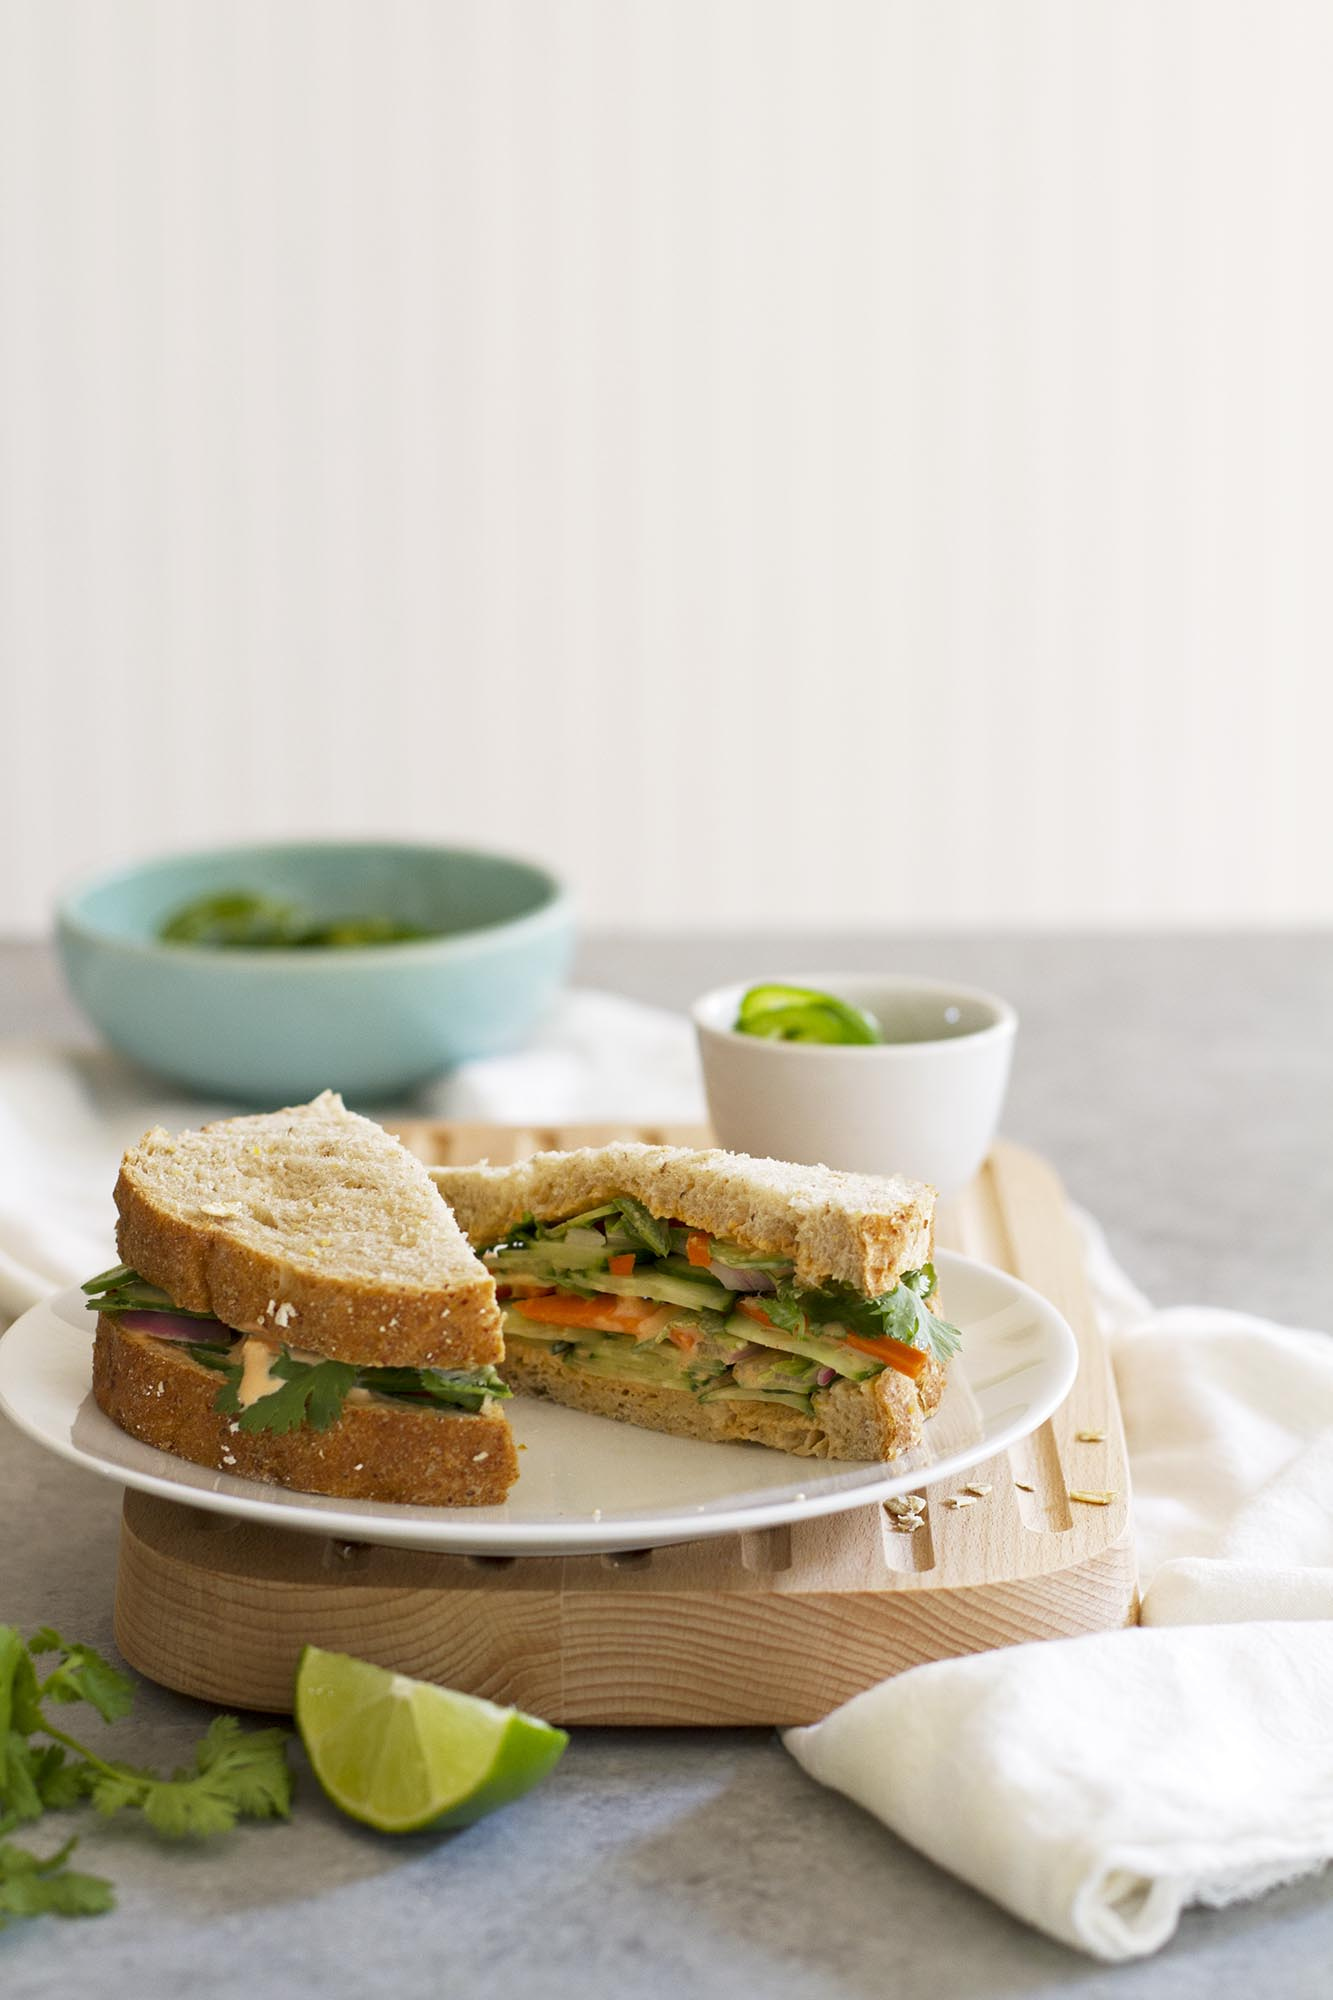 sliced spicy Thai veggie sandwich on plate